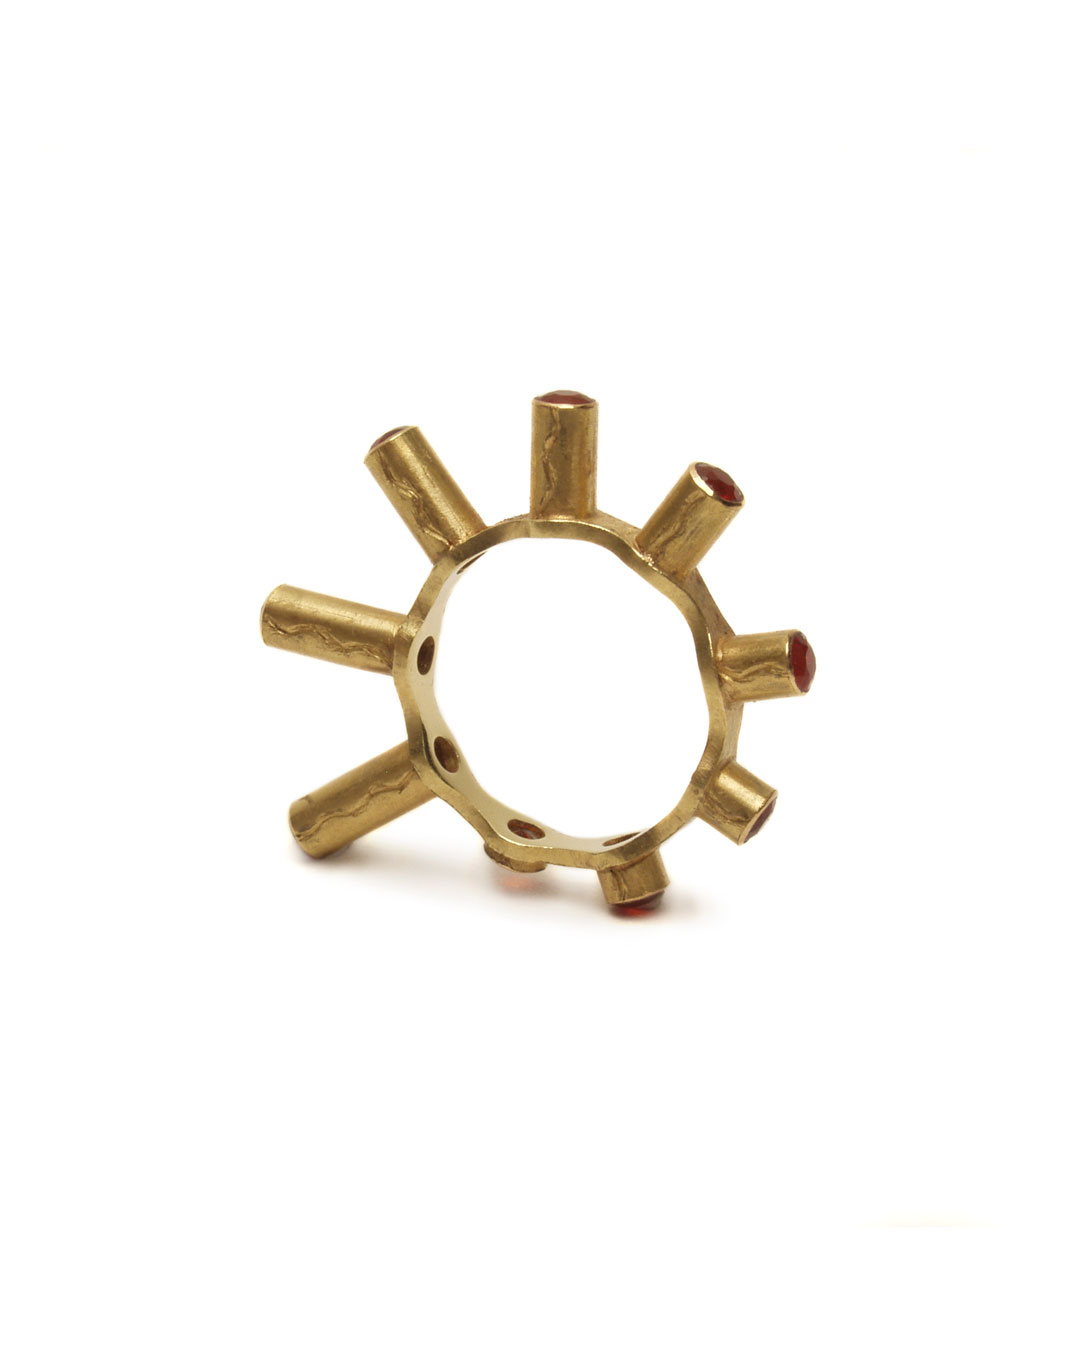 Julie Mollenhauer, untitled, 1993, ring; gold, fire opal, ø 30 x 4 mm, €1150